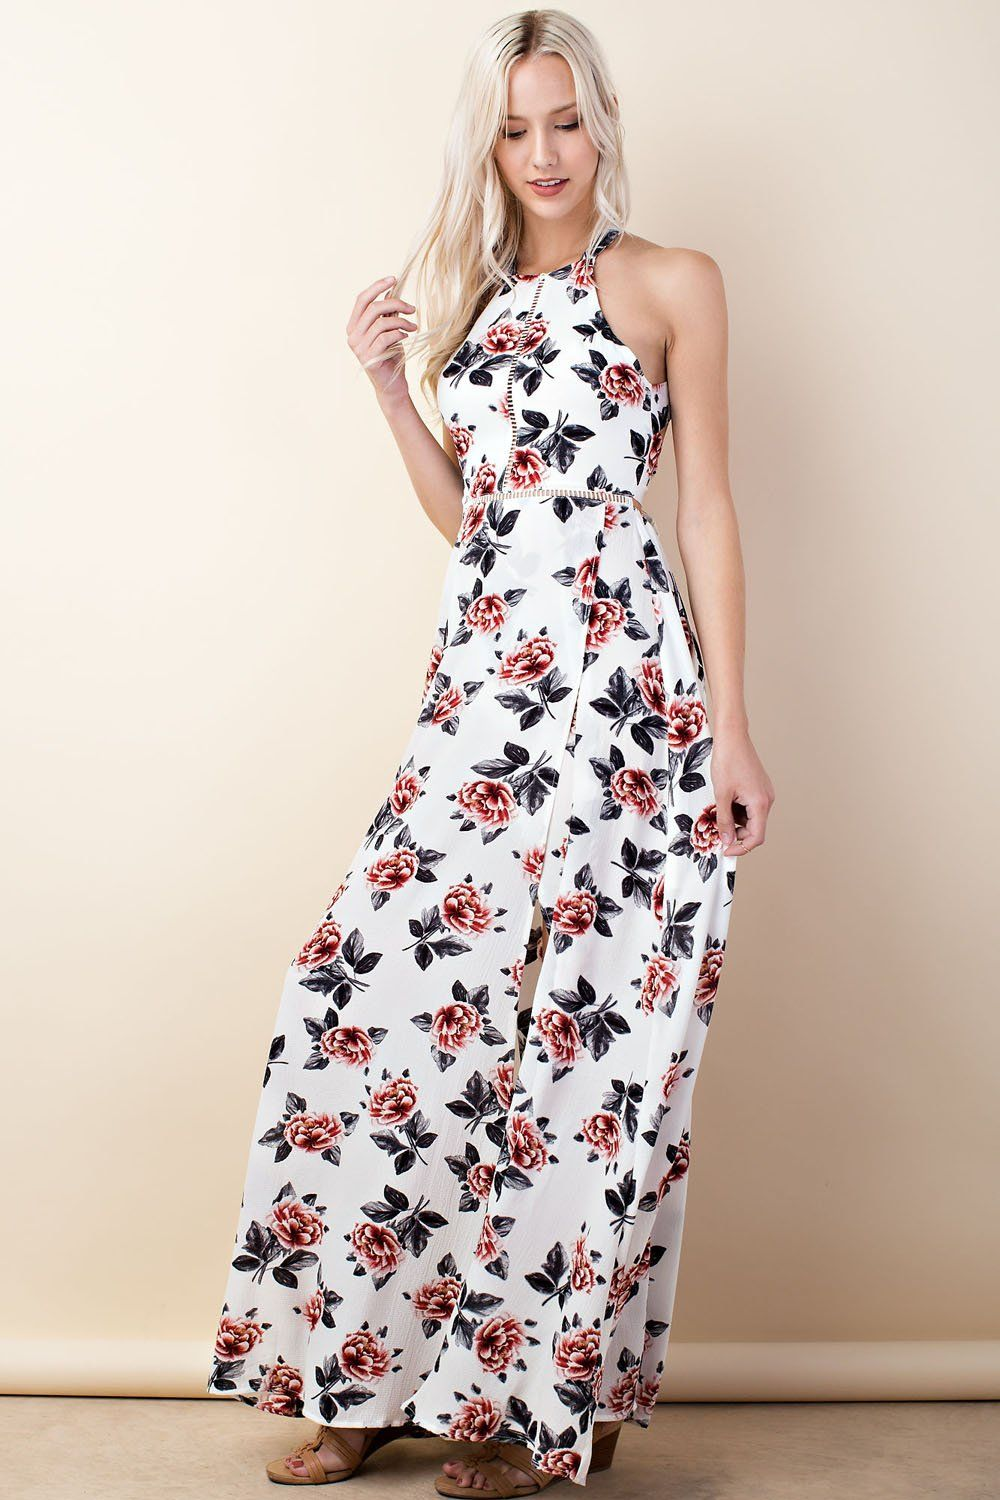 74cf7b1bd651 Flaunt your body in this beautiful Halter Neck Trim Insert Printed Maxi  Dress in Off White. It has red and white floral print with front slit.